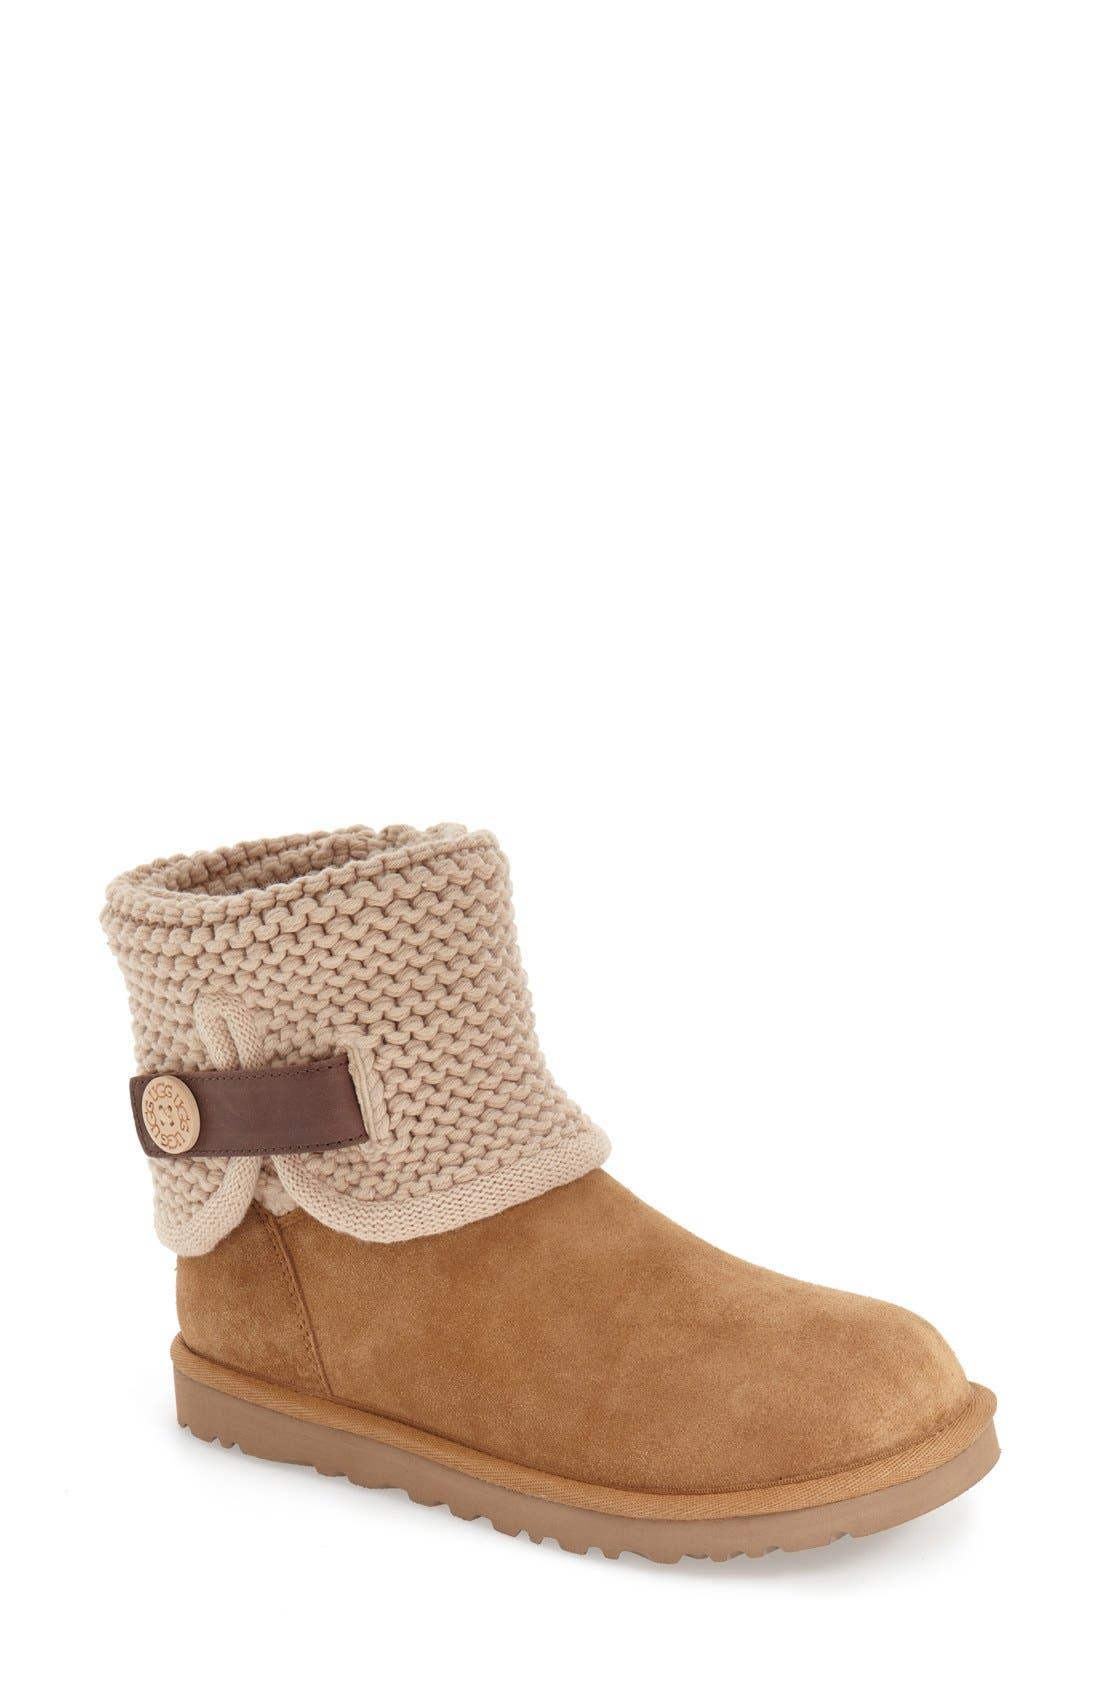 Shaina Knit Cuff Bootie,                             Main thumbnail 1, color,